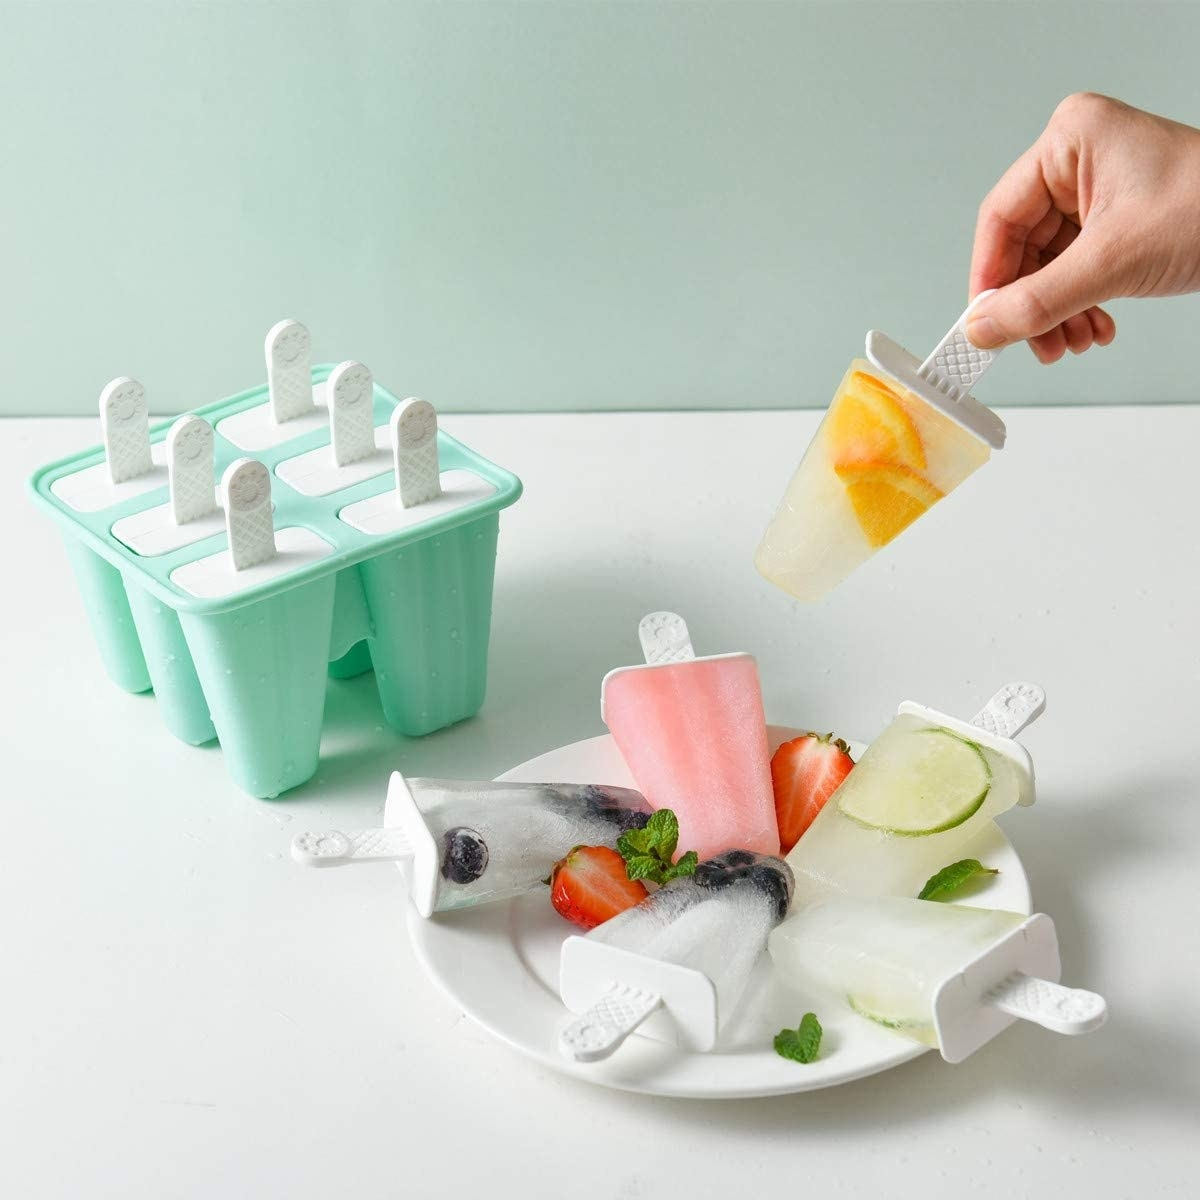 Model holding homemade popsicle next to ice pop mold